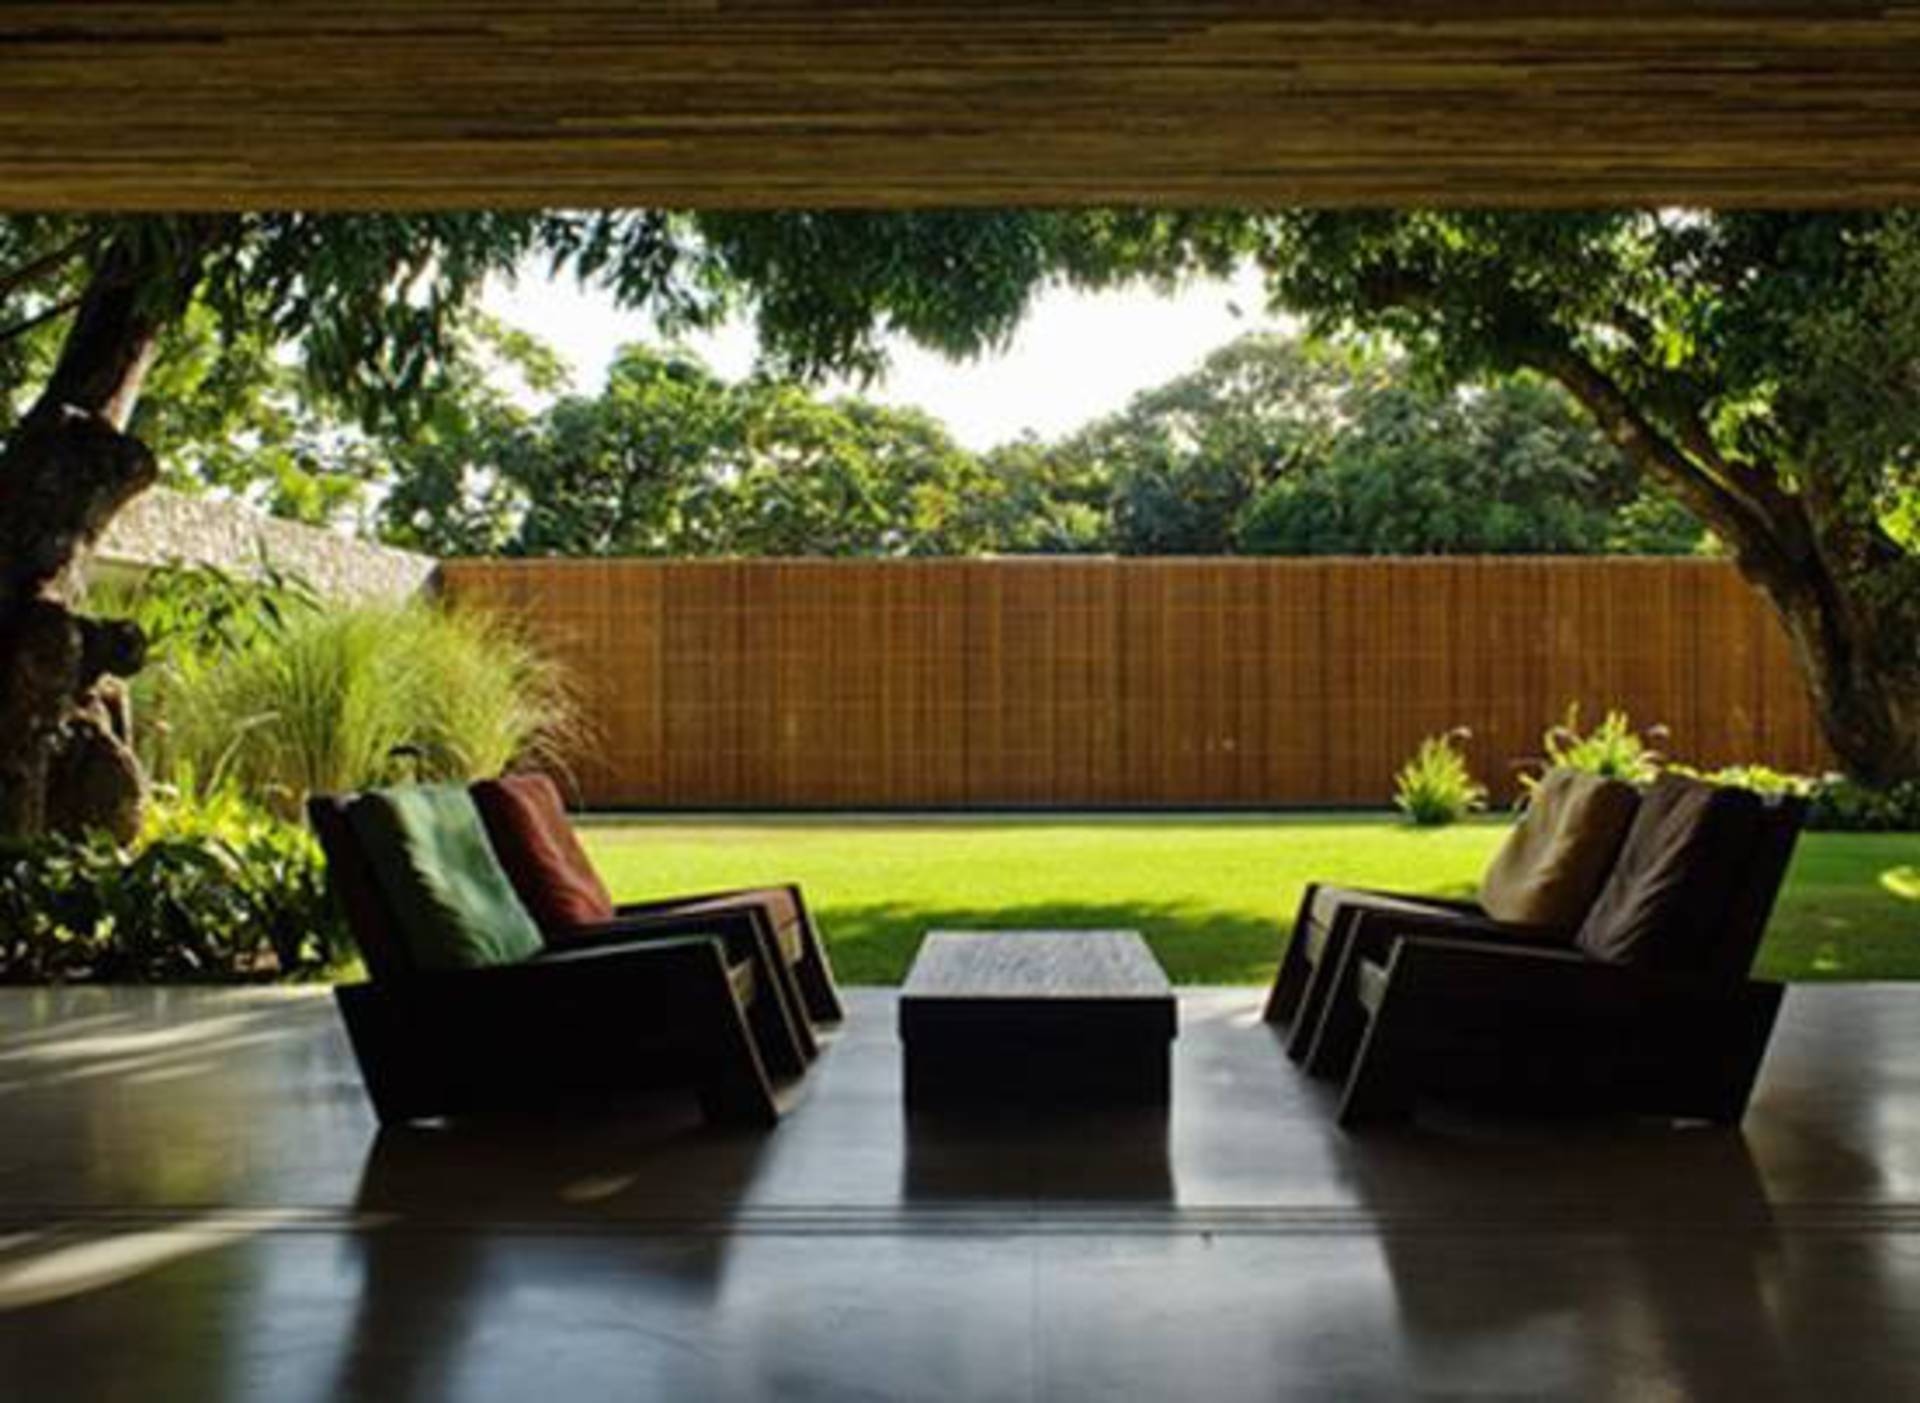 bahia house in brazil by studio mk27 home reviews ruger sp101 revolver 357 magnum centerfire 4 20